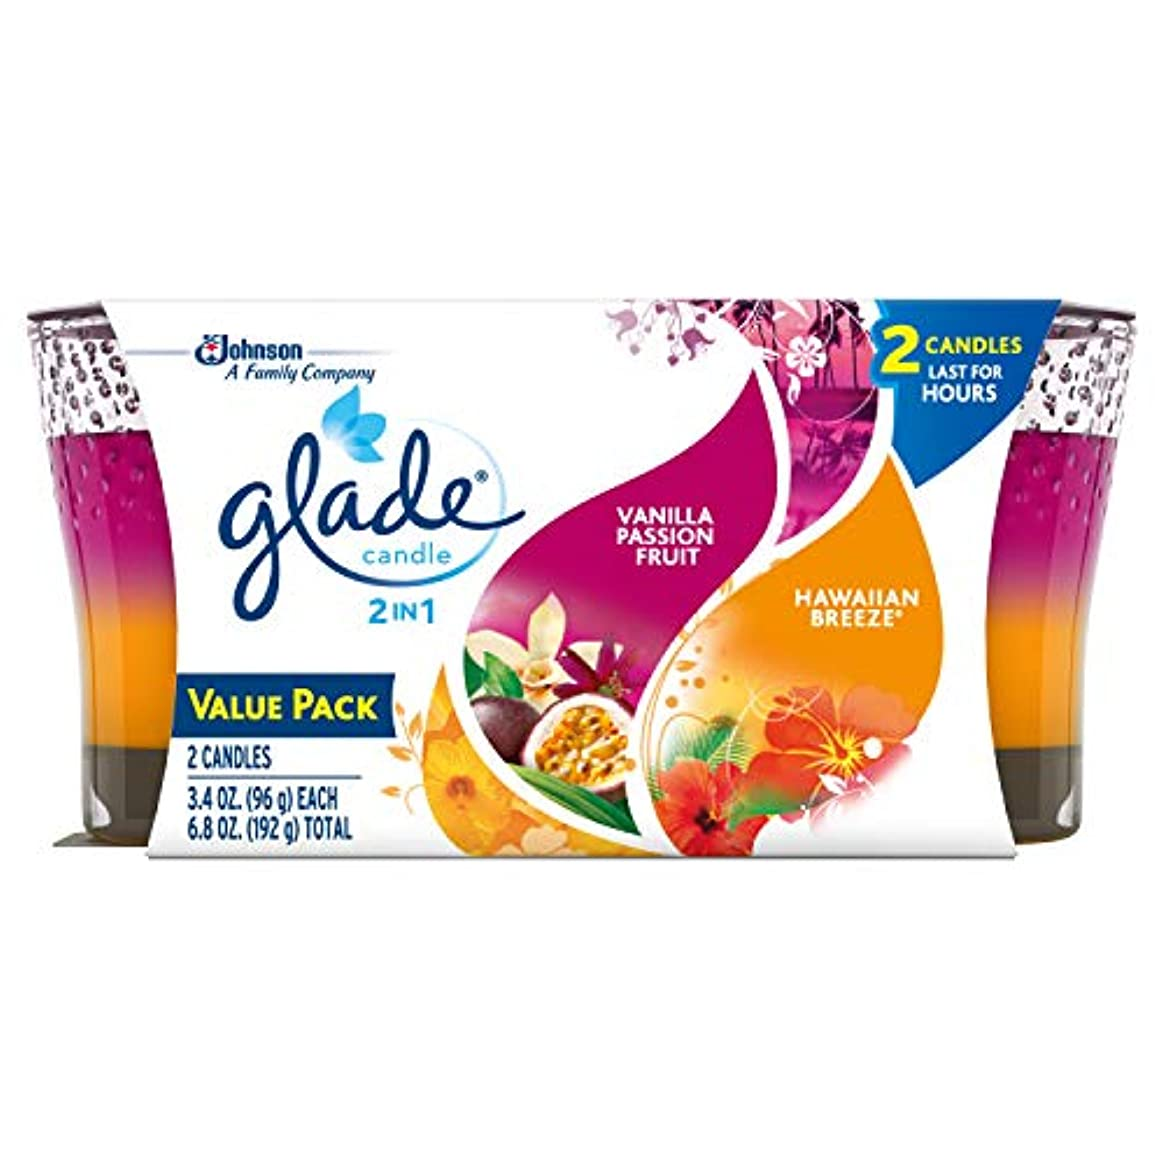 グリット和解する兵士Glade 2in1 Jar Candle Air Freshener, Hawaiian Breeze and Vanilla Passion Fruit, 2 count, 6.8 Ounce by Glade